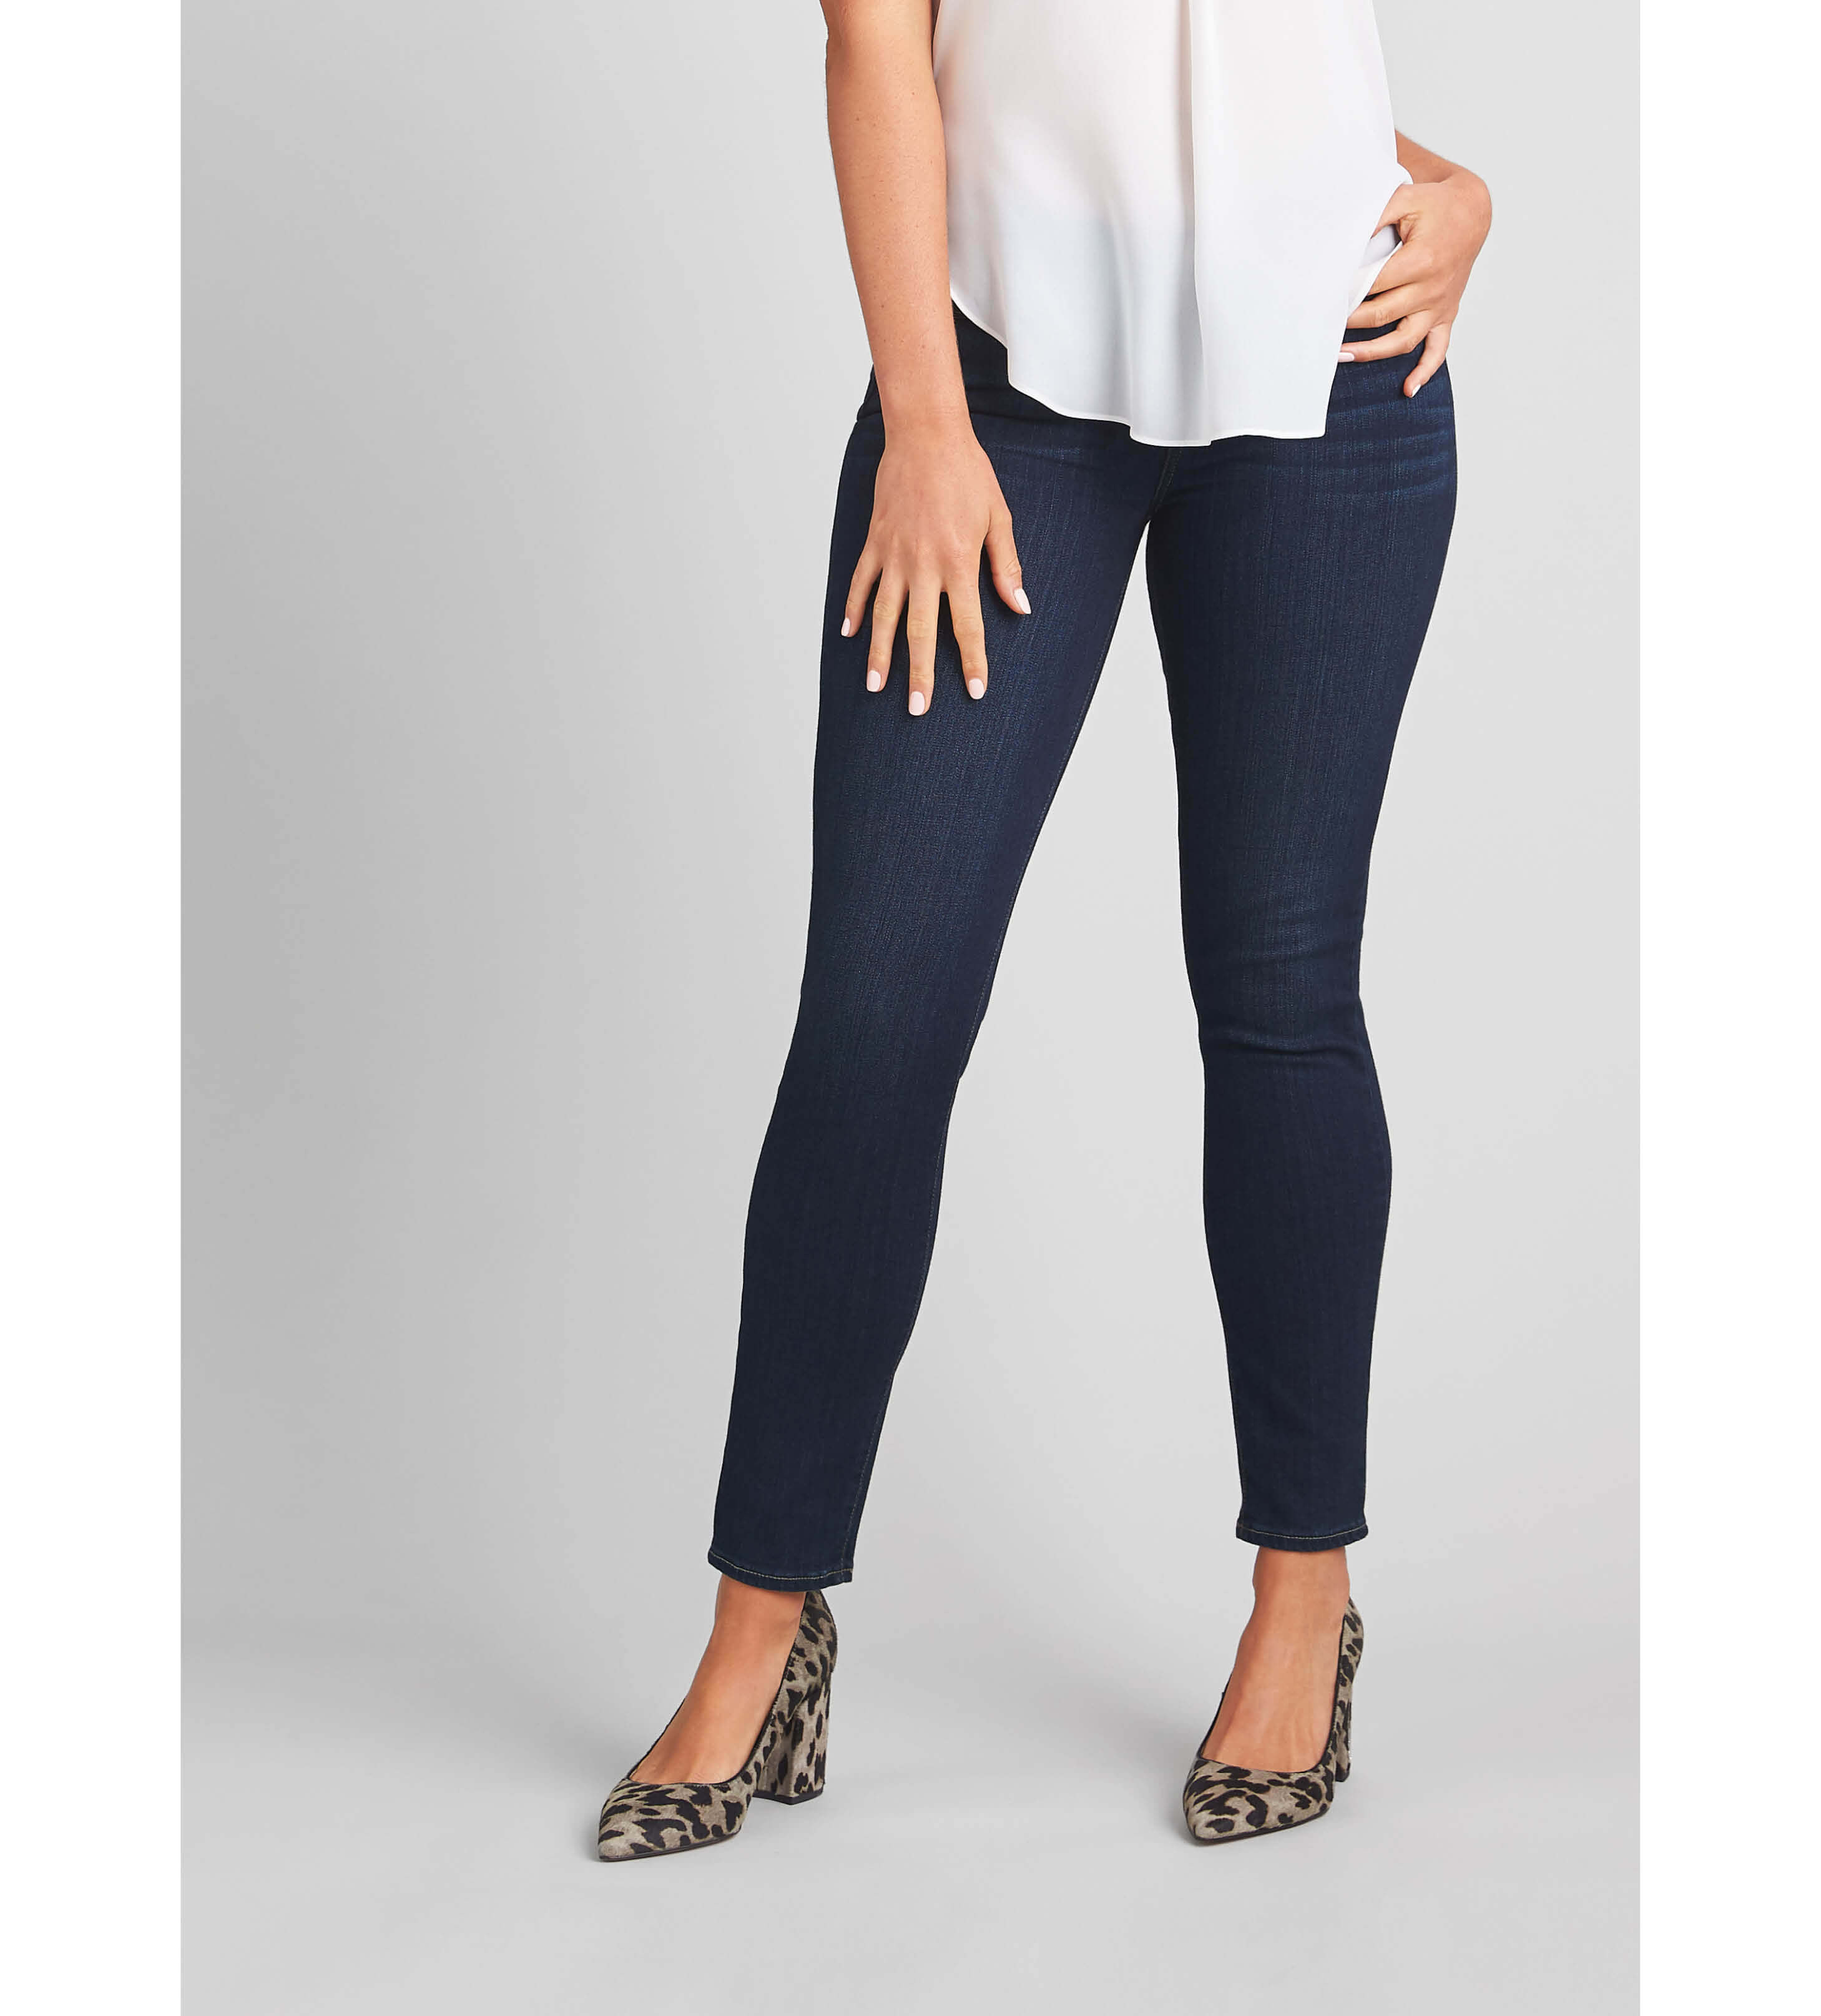 shop for luxury cheapest sale discount collection How to Find Jeans for an Apple Shape | Stitch Fix Style